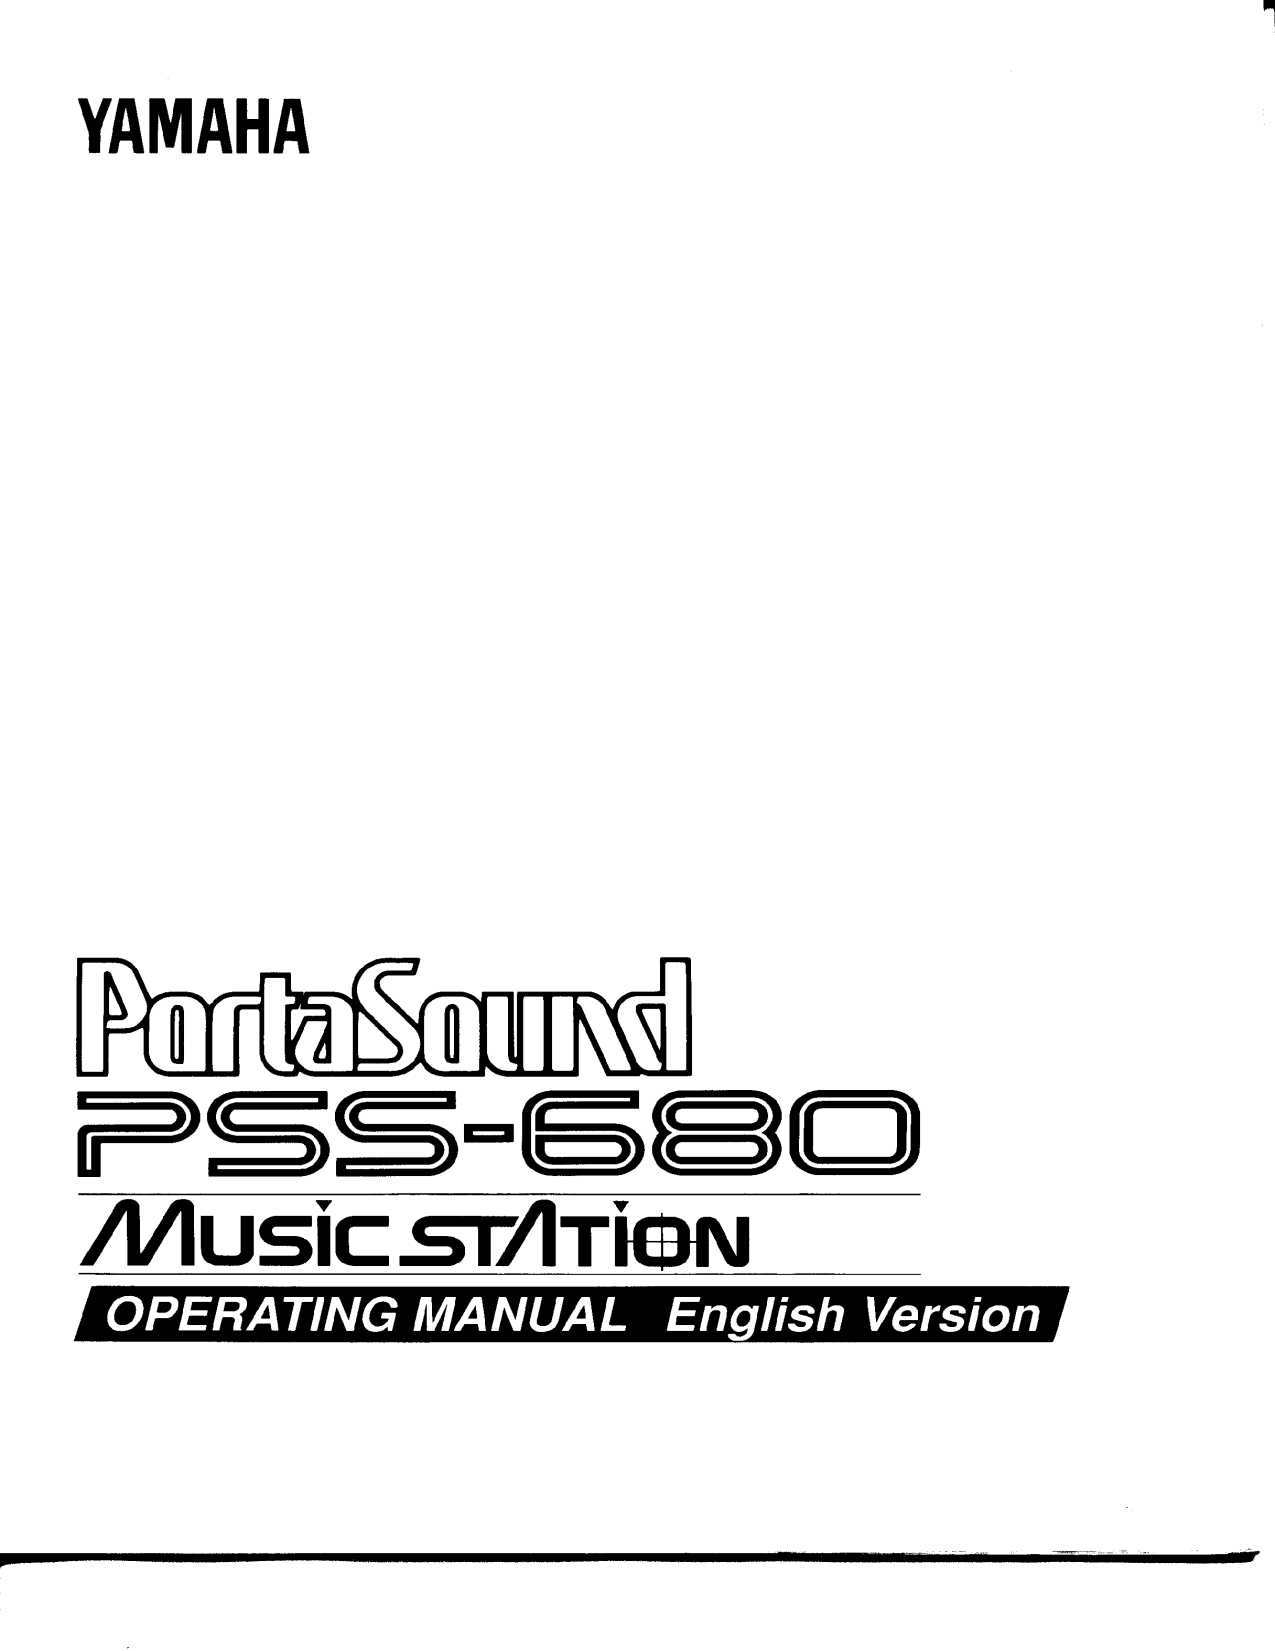 Download free pdf for Yamaha PSS-680 Music Keyboard manual